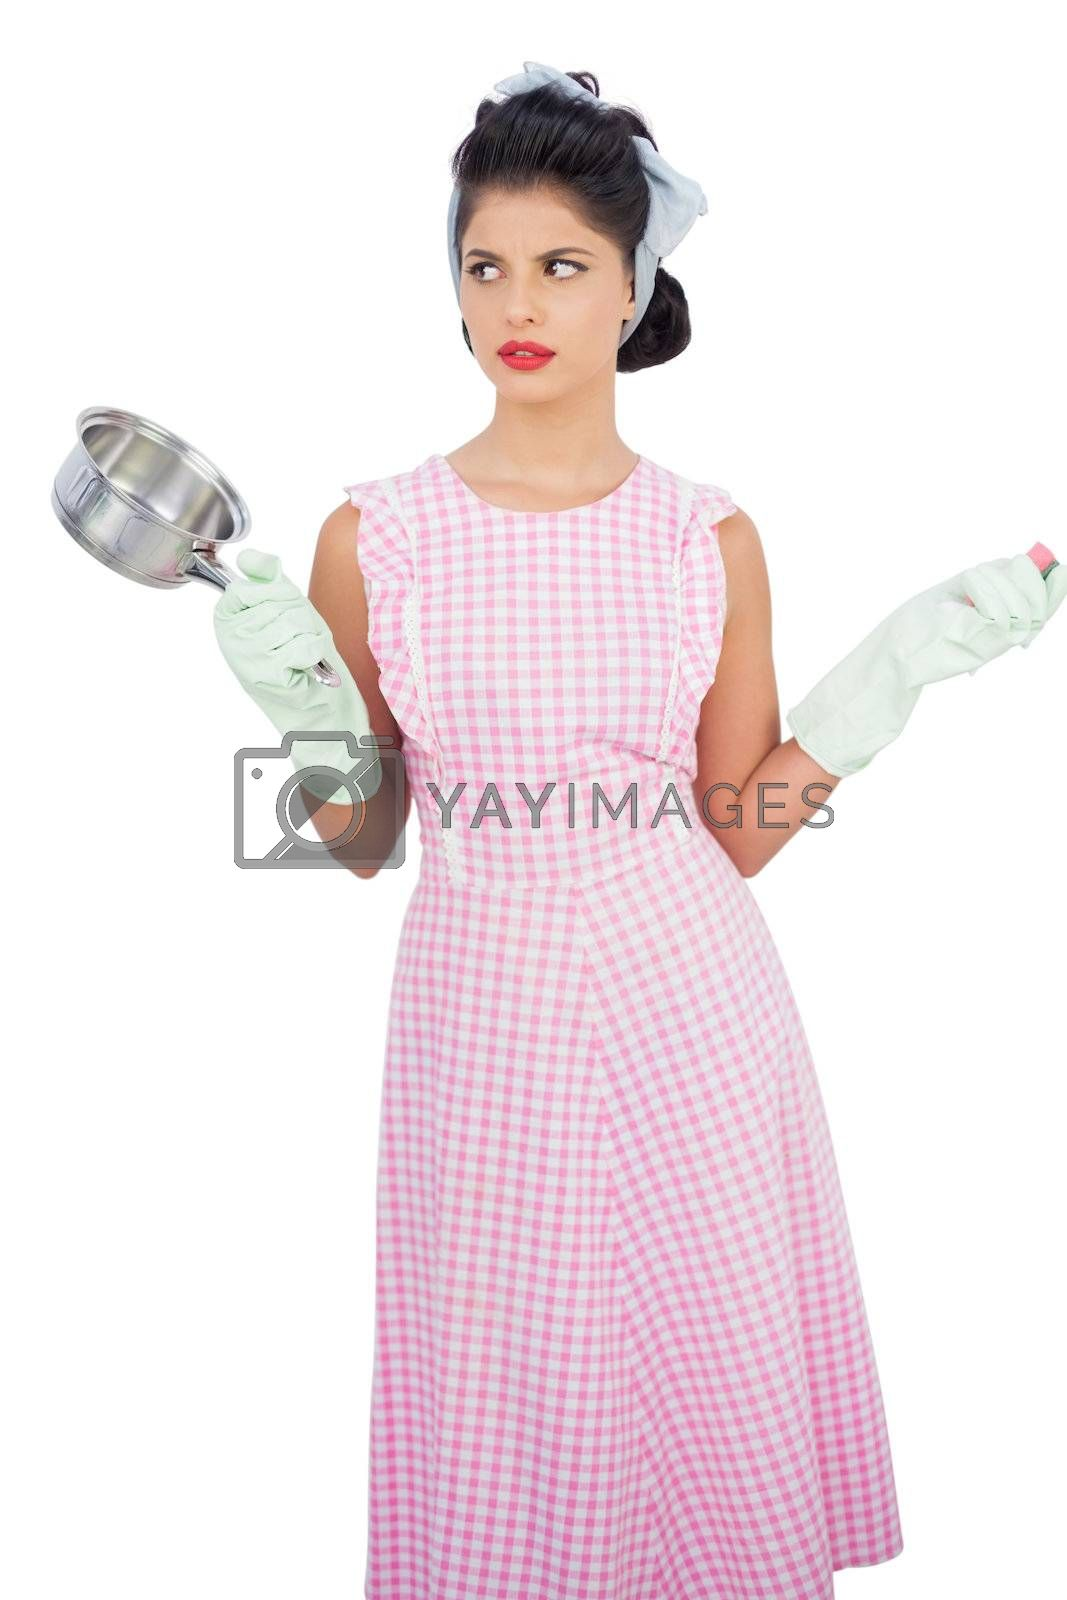 Puzzled black hair model holding a pan and wearing rubber gloves  by Wavebreakmedia